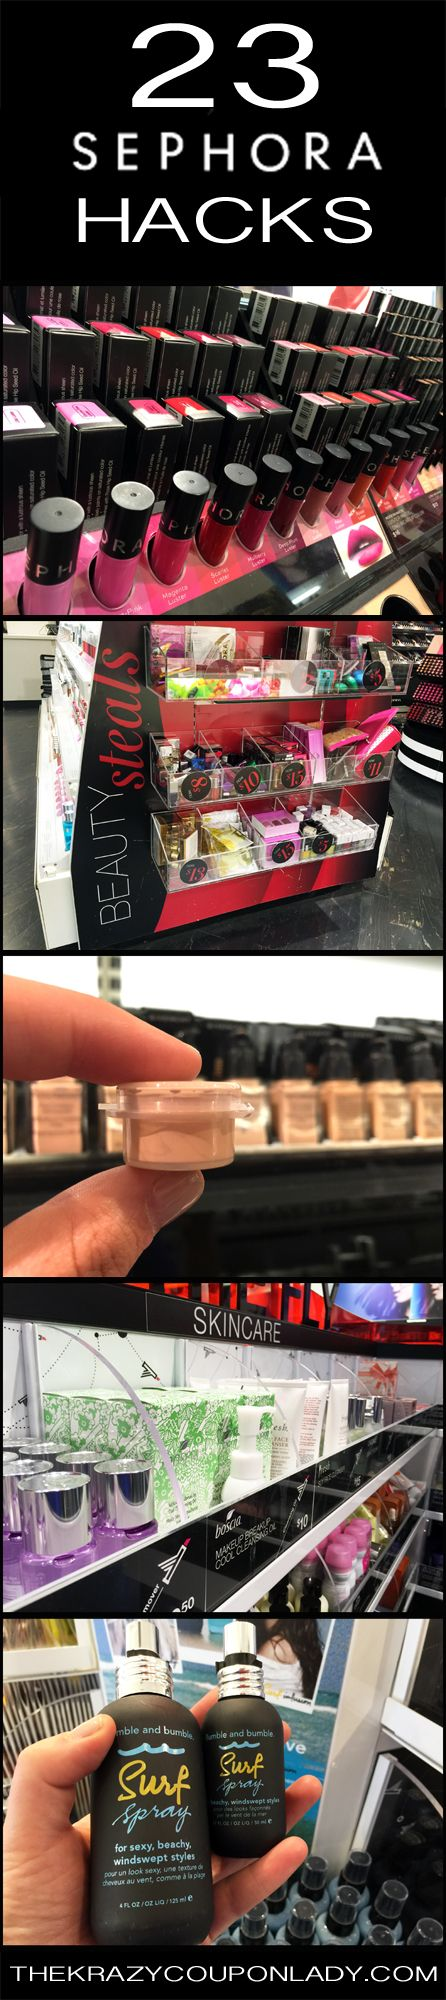 23+Insider+Hacks+from+a+Sephora+Employee.... this was very helpful!